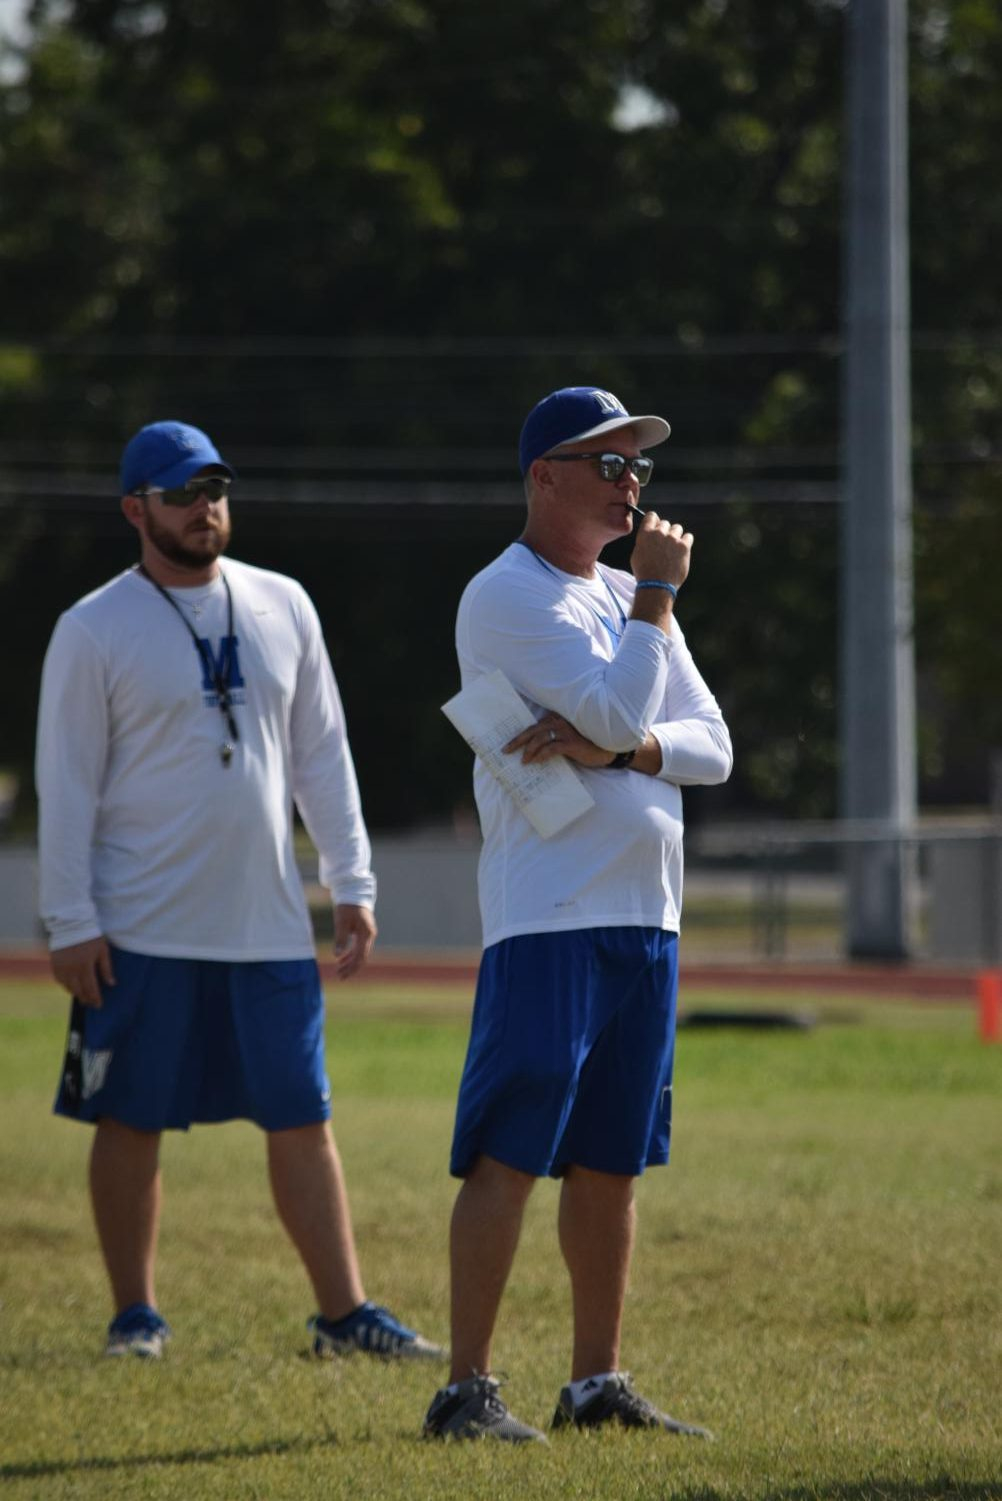 Searle, right, coached baseball last season at Lago Vista with new varsity baseball coach Brandon Grant, left. Both also coached football as shown here at the Blue-Gray Scrimmage to kick off the football season.